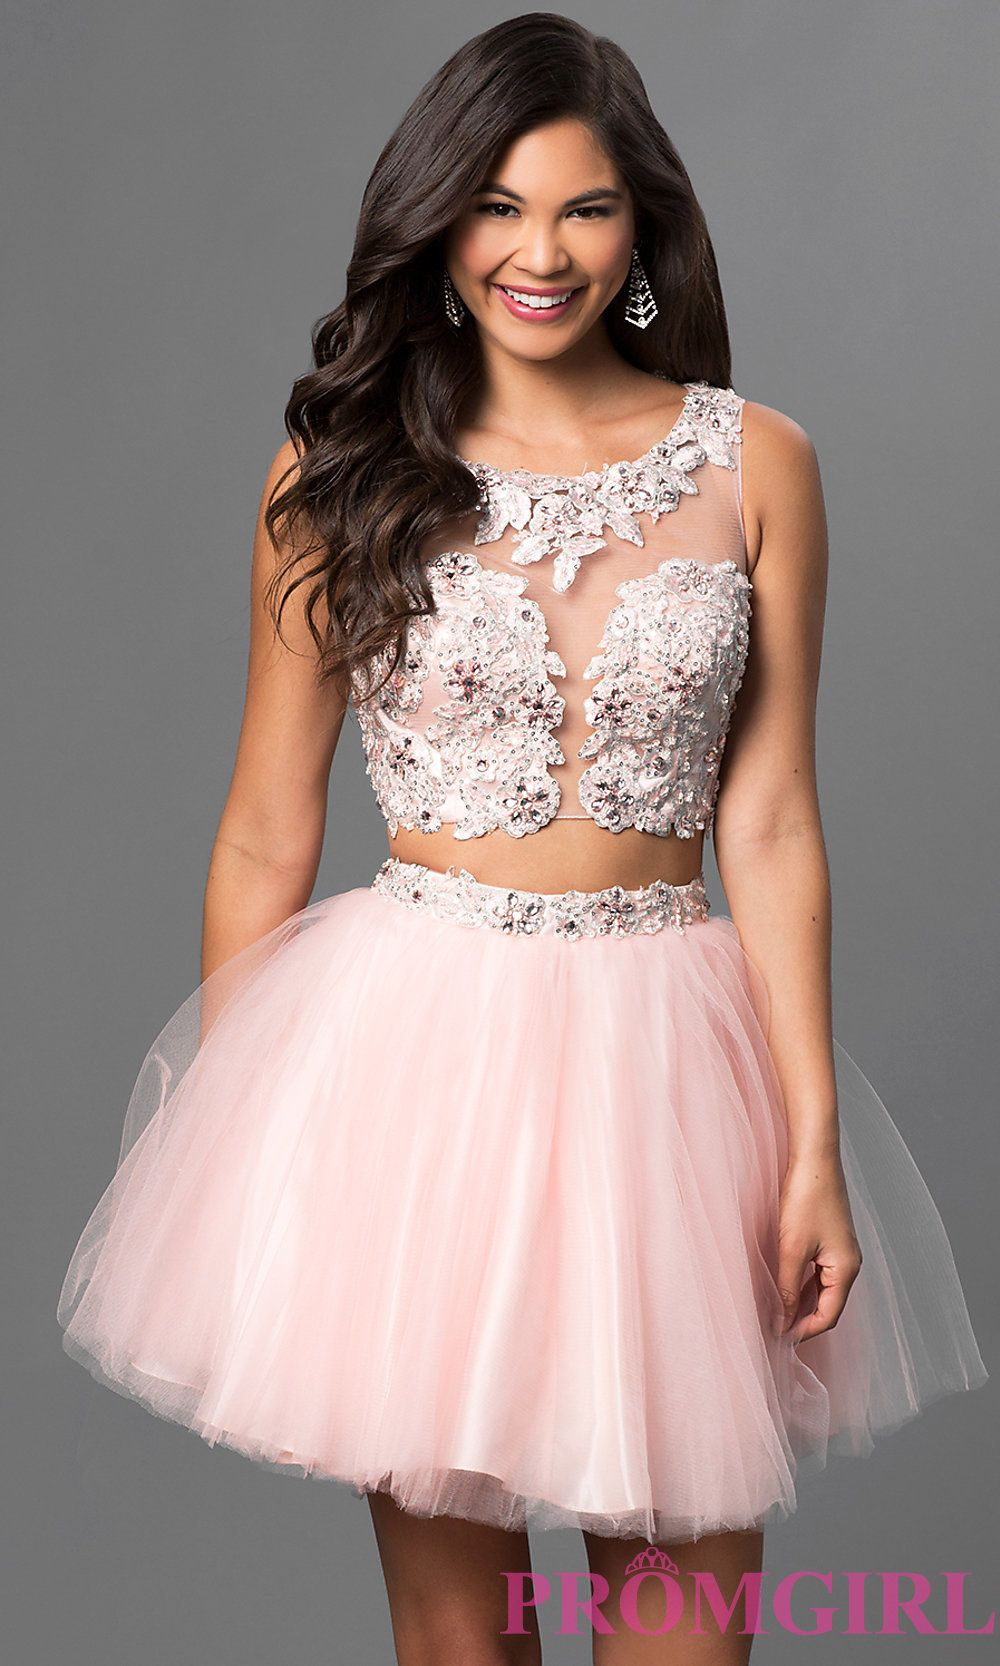 Twopiece pink babydoll party dress by dave u johnny homecoming